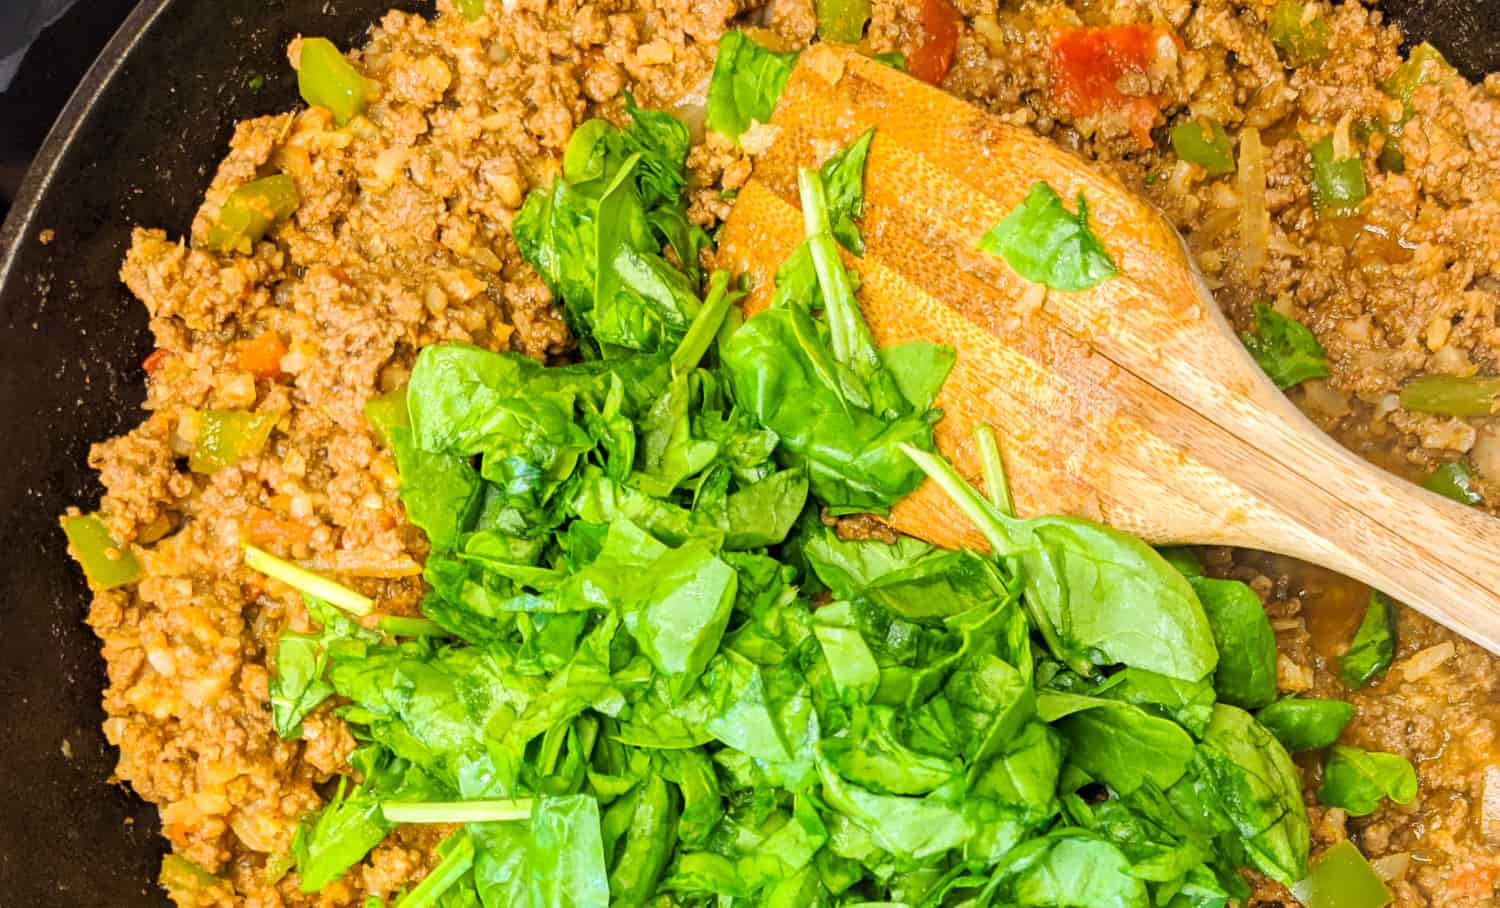 Ground beef with hidden veggies